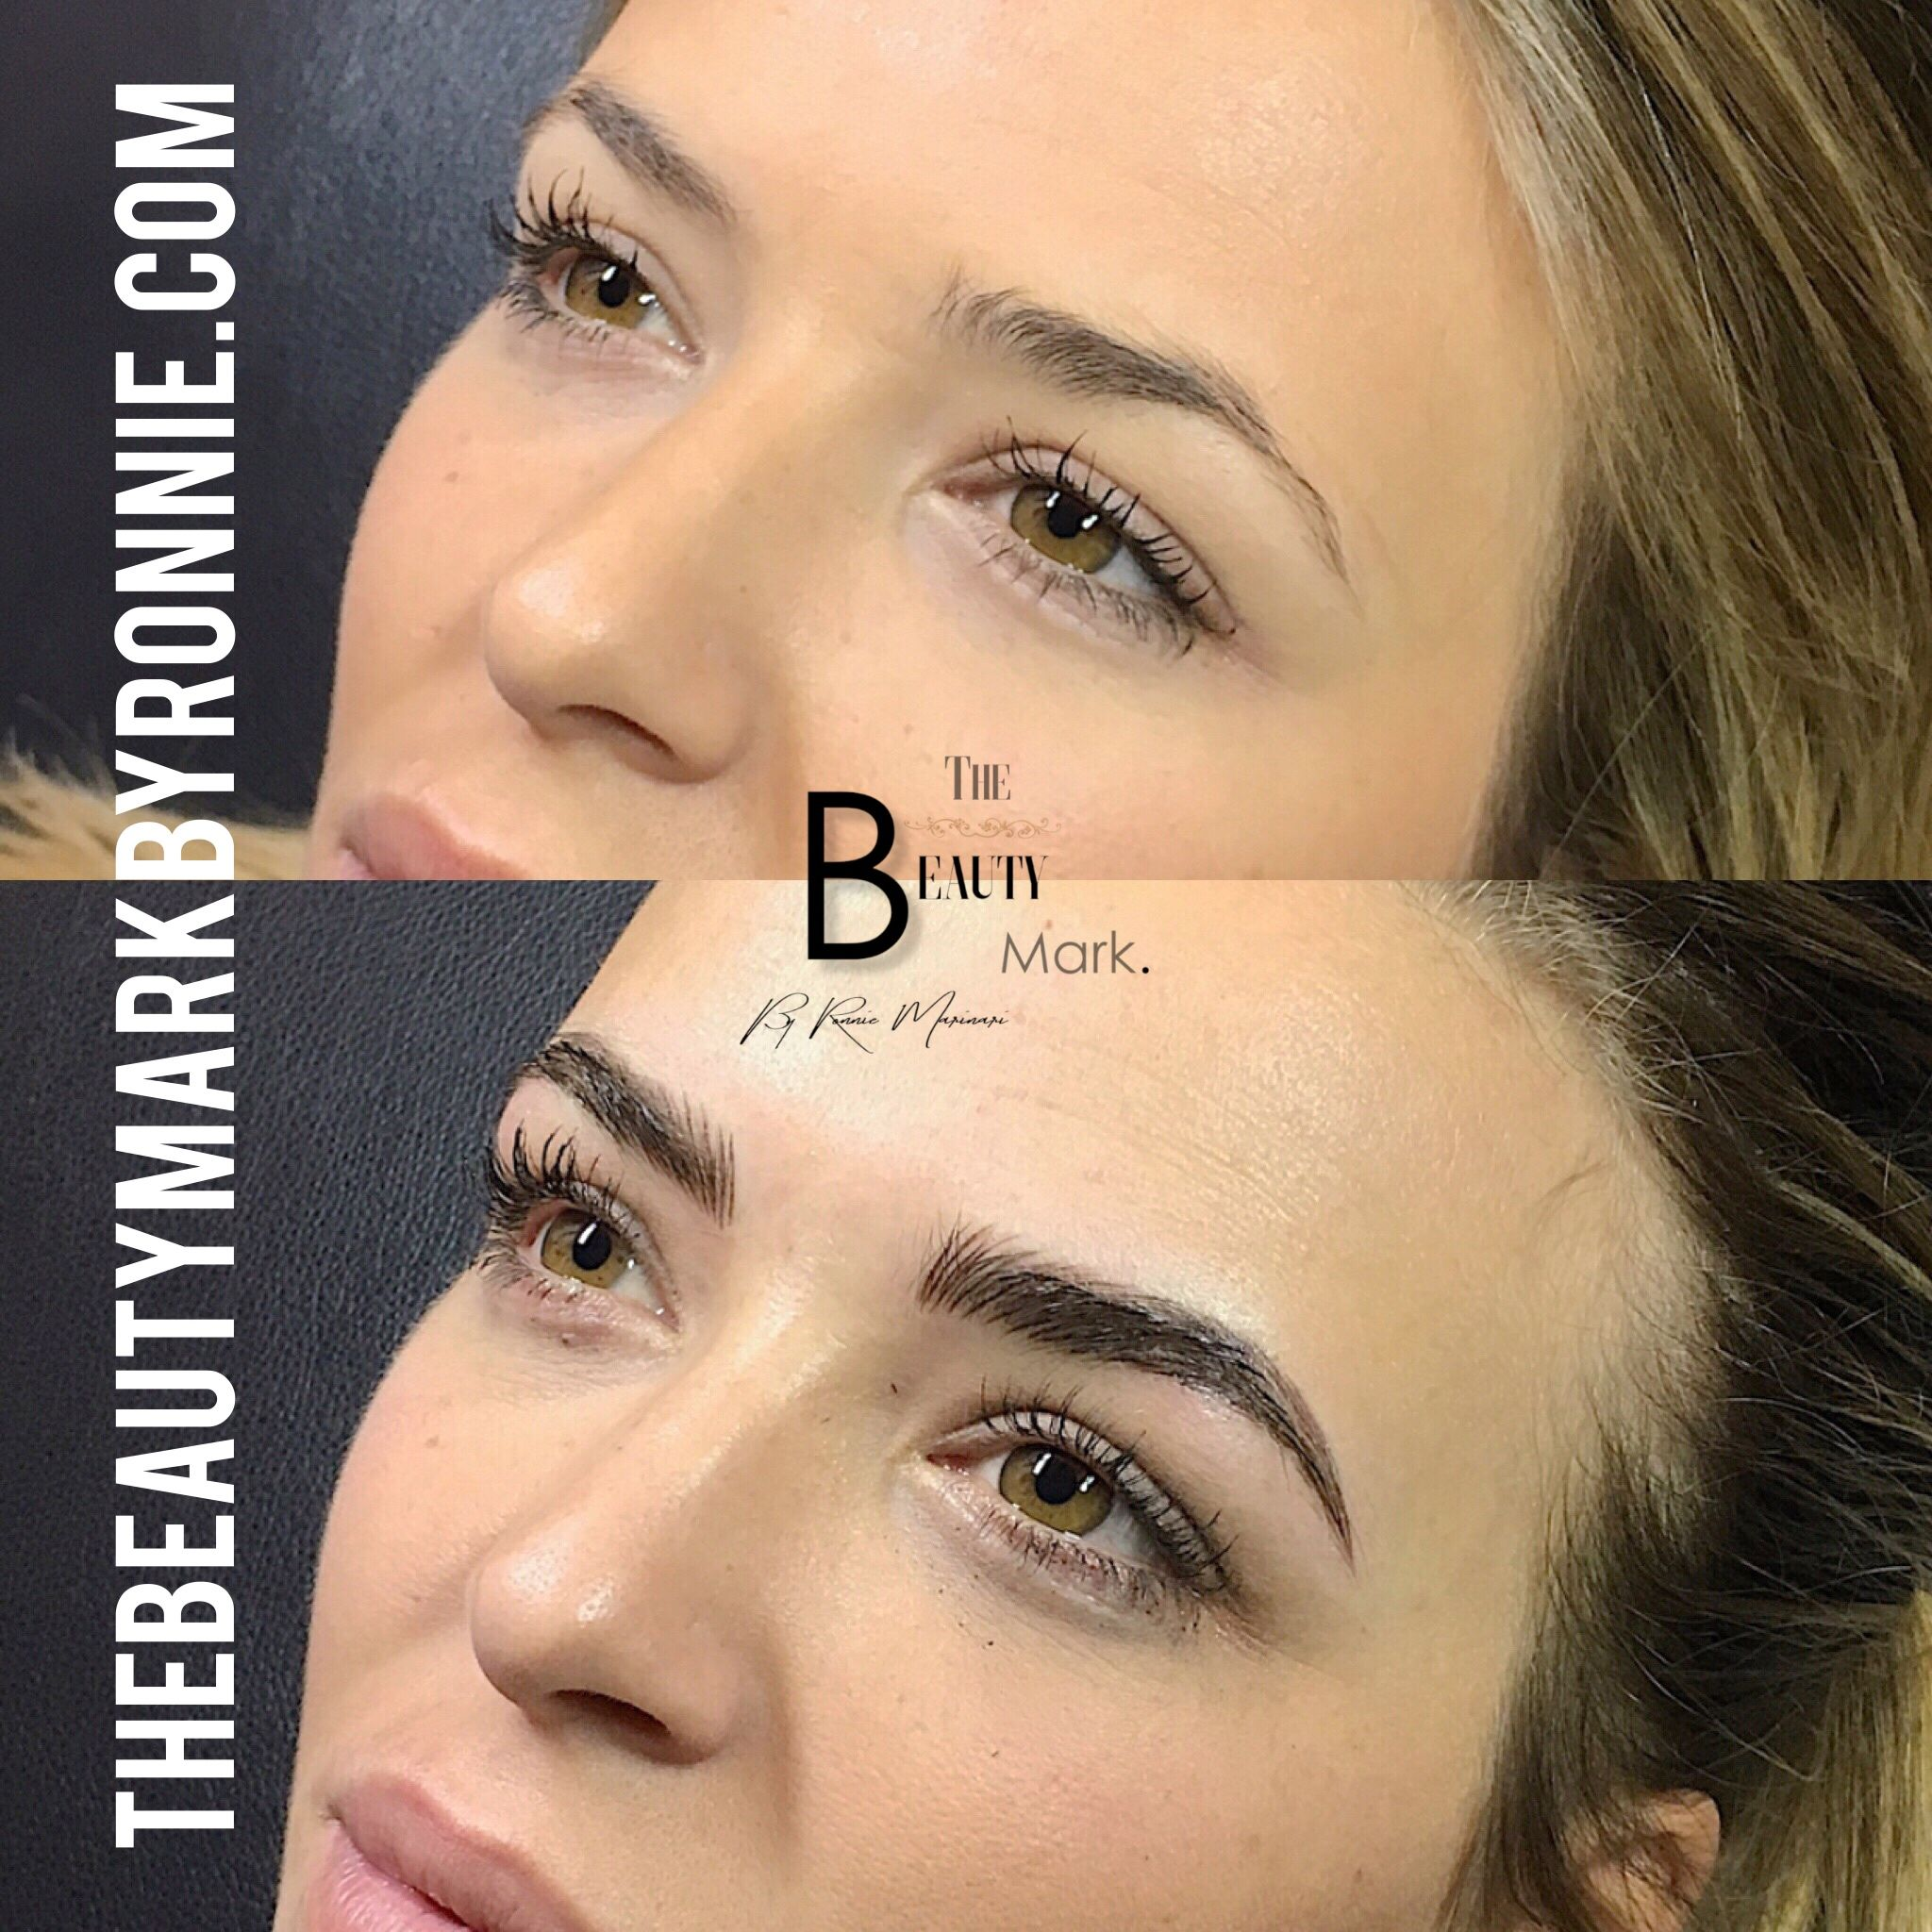 Microblading combination Microblading, Facial images